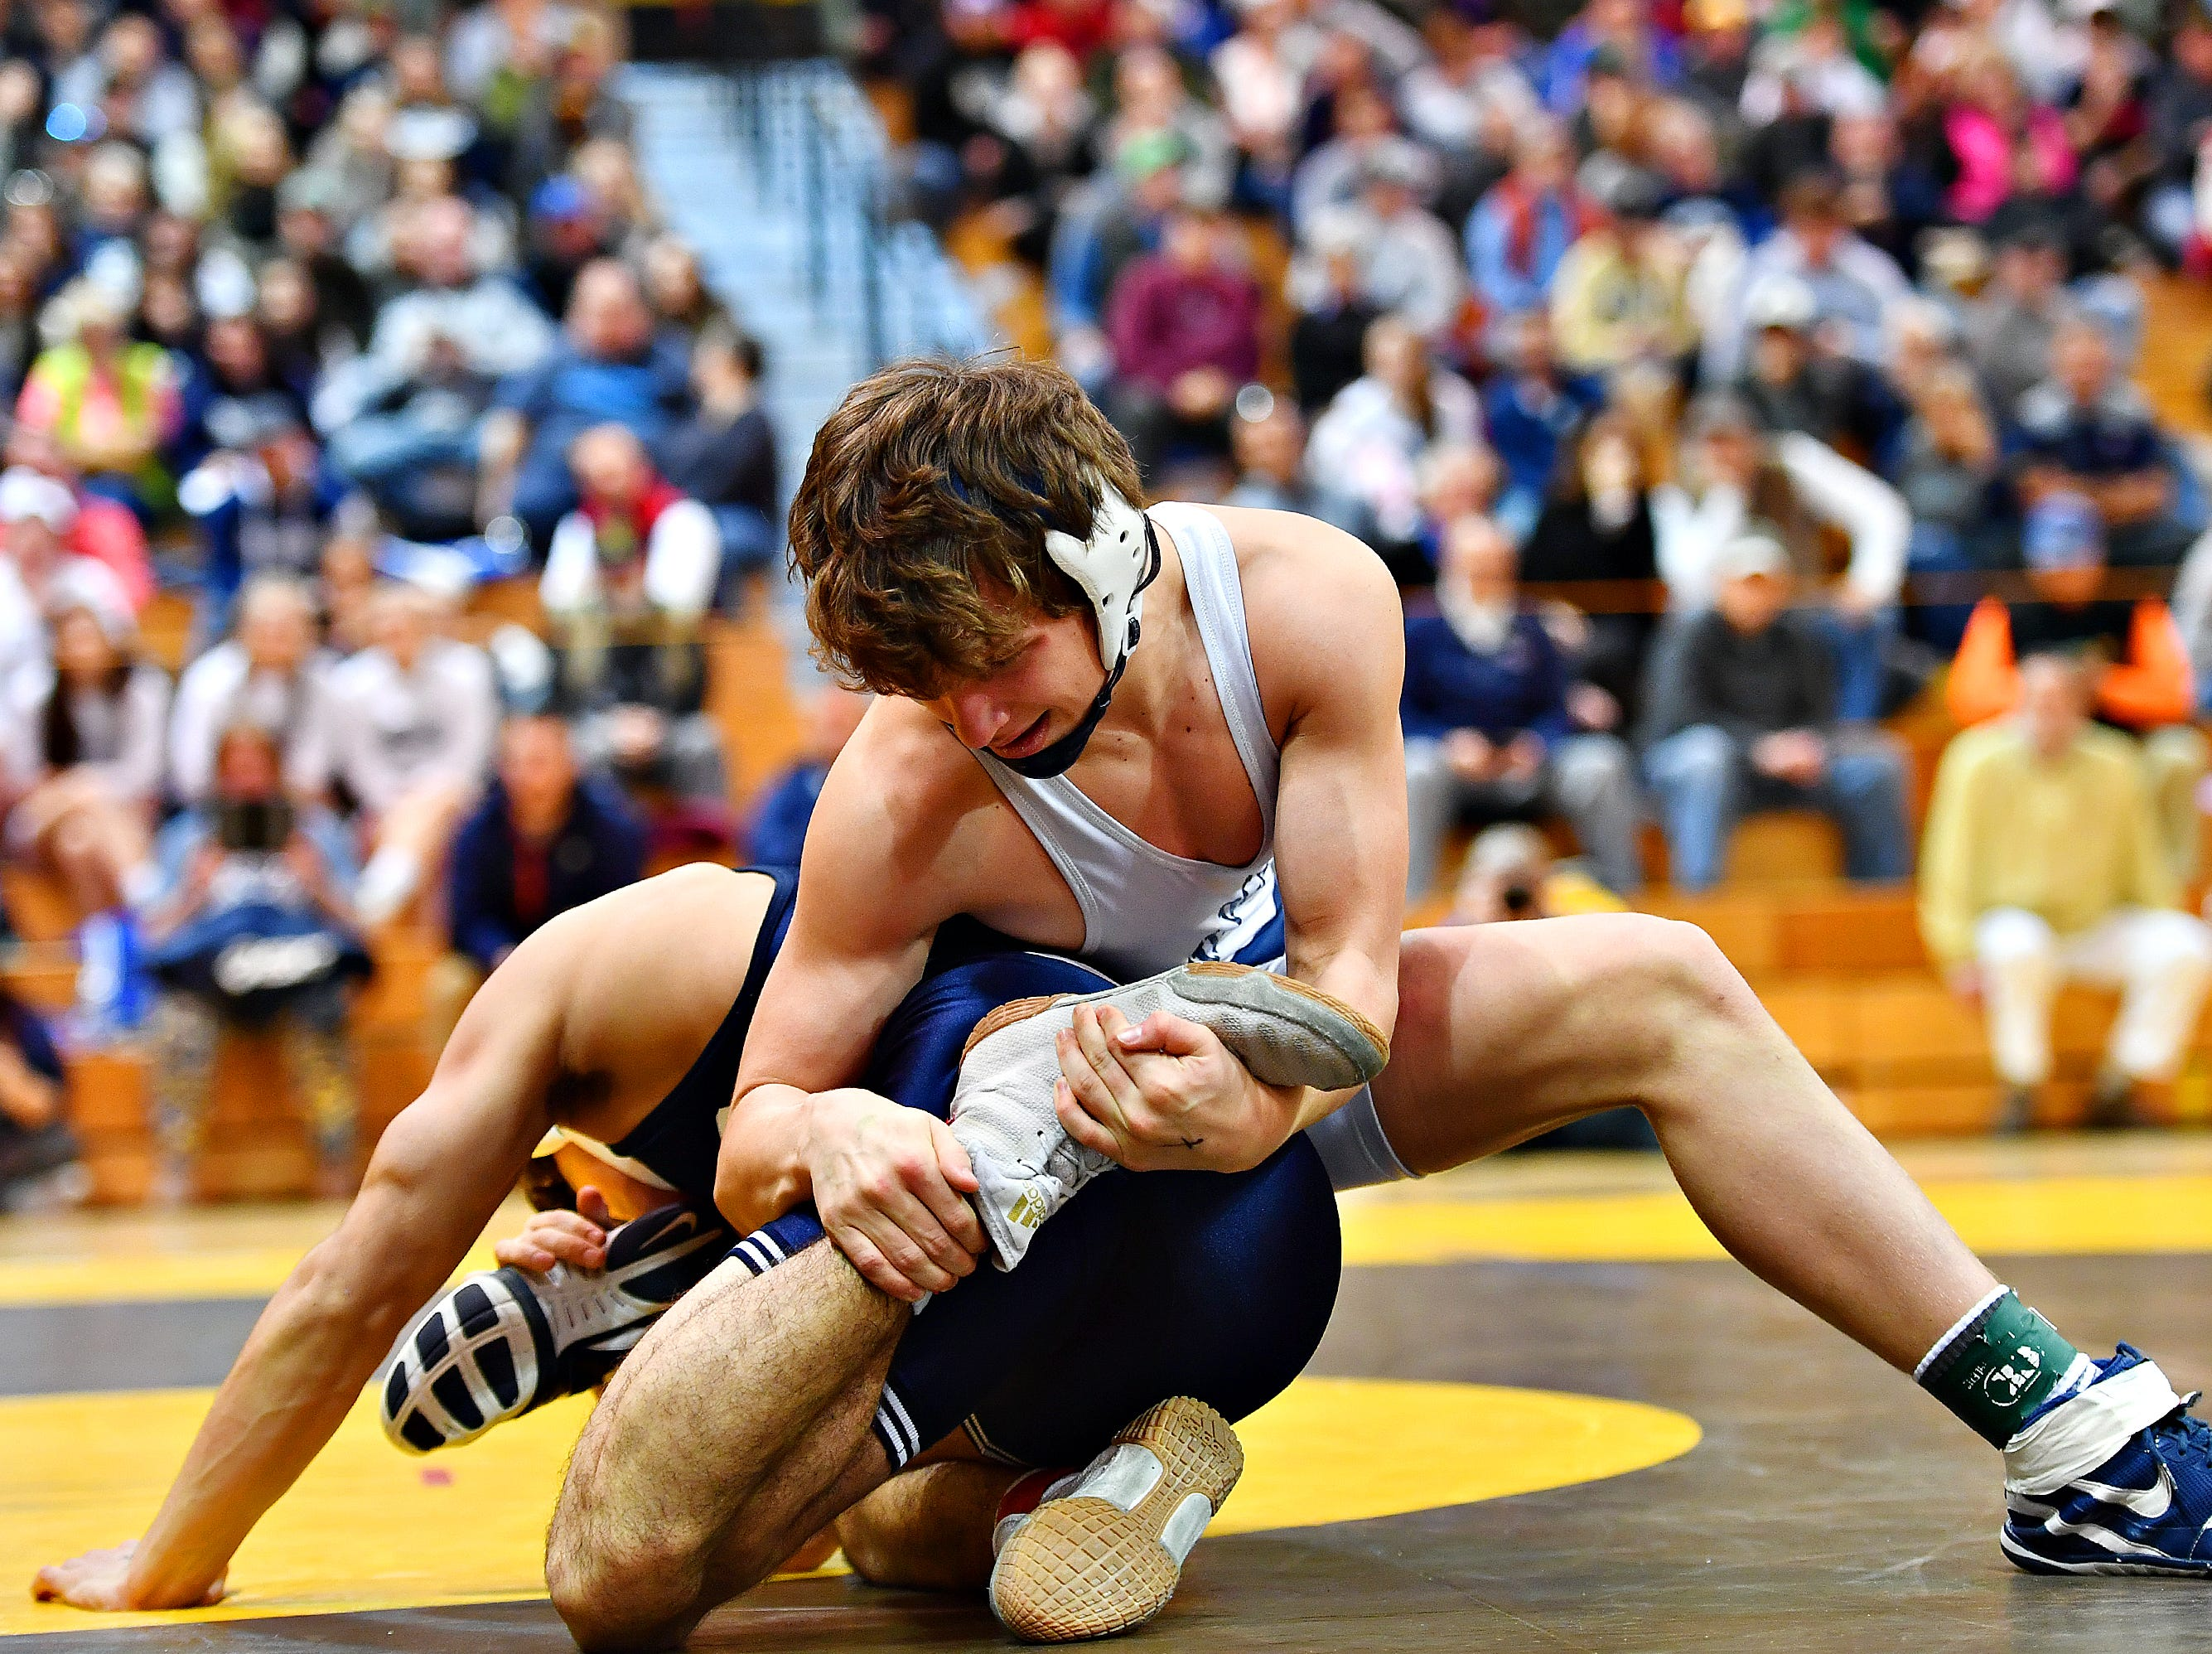 Dallastown's Brooks Gable, right, wrestles Cedar Cliff's Christian Prestil in the 138 pound weight class during District 3, Class 3A wrestling championship action at Milton Hershey High School in Hershey, Saturday, Feb. 2, 2019. Dawn J. Sagert photo